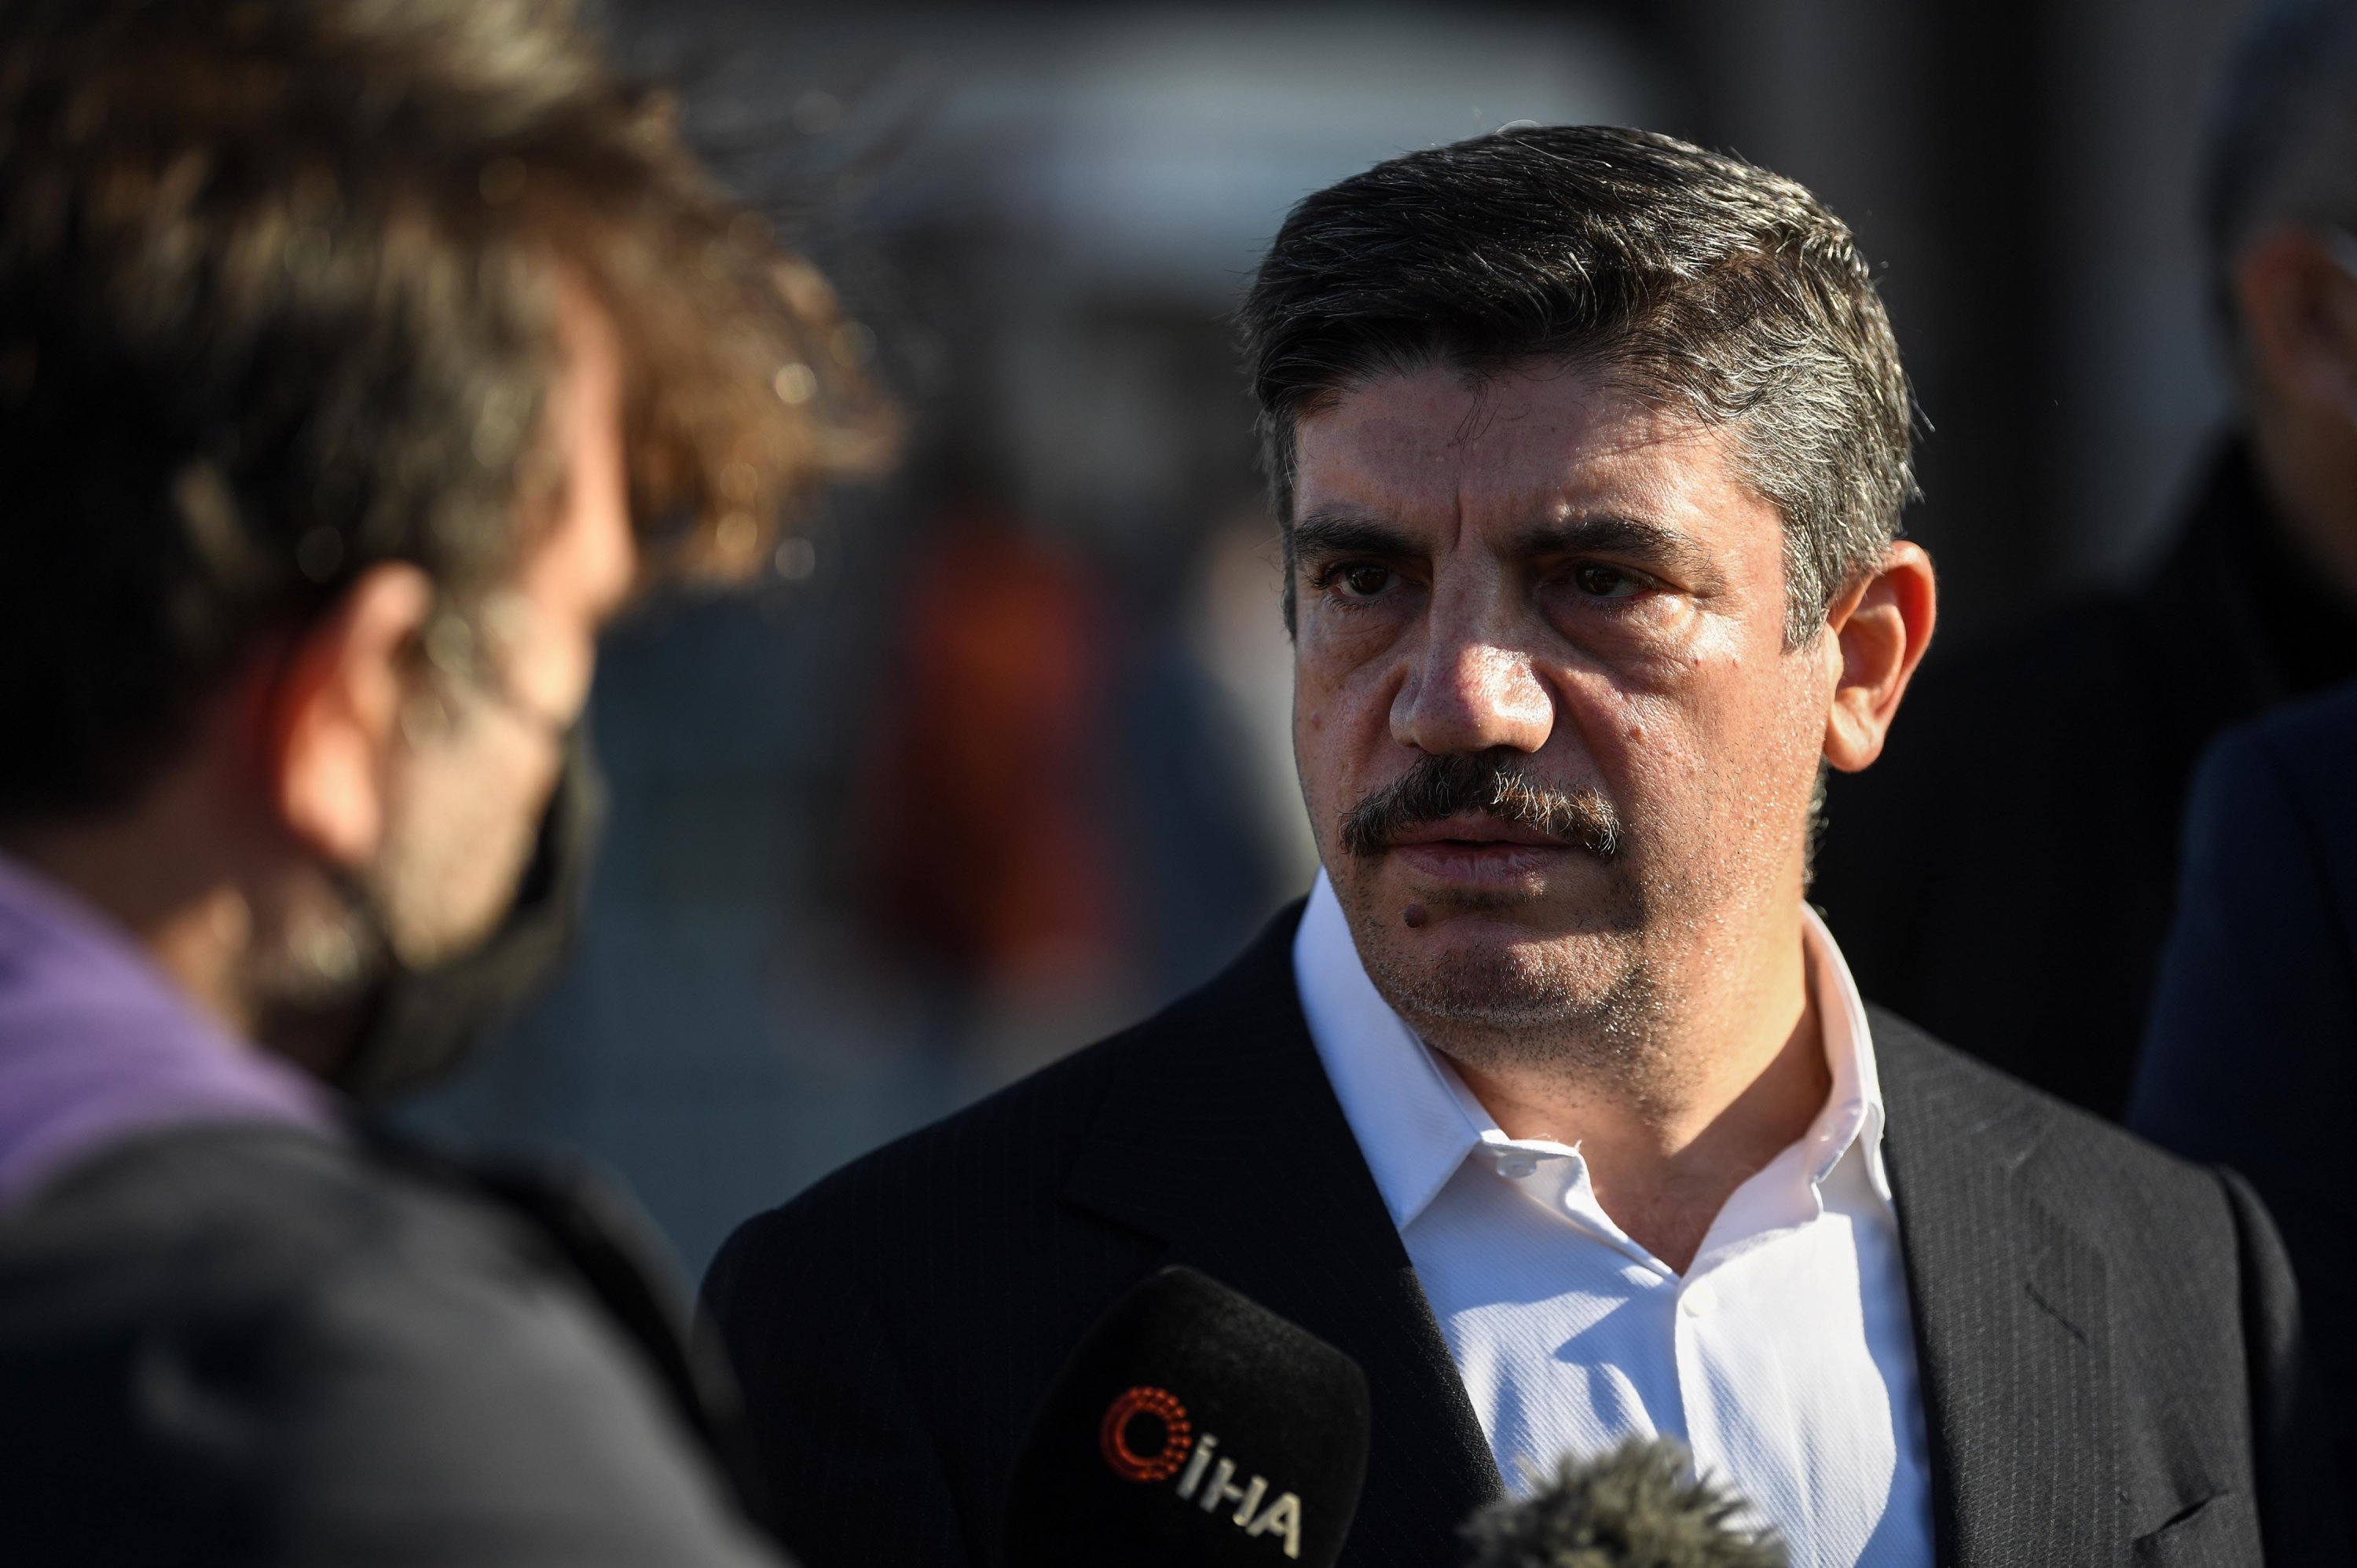 Yasin Aktay, a ruling Justice and Development Party (AK Party) member of Parliament and head of the Turkish group of the Inter-Parliamentary Union, speaks to media members in front of an Istanbul courthouse, Turkey, Nov. 24, 2020. (AFP Photo)